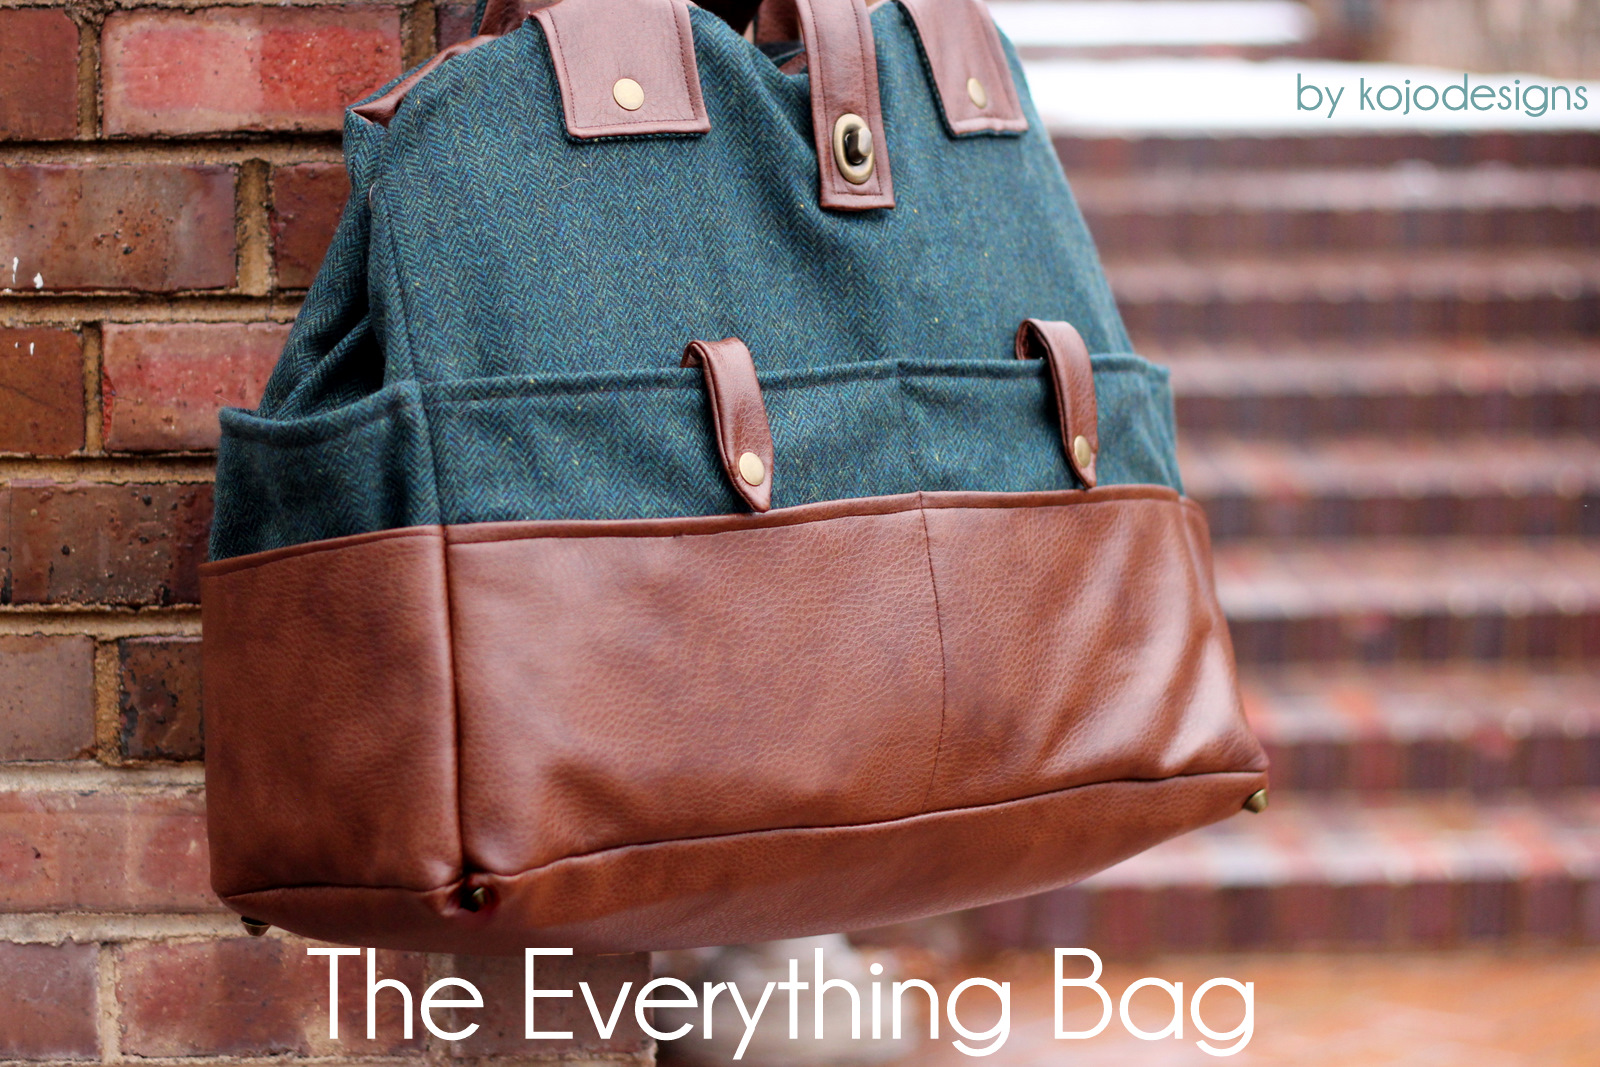 the evolution of The Everything Bag